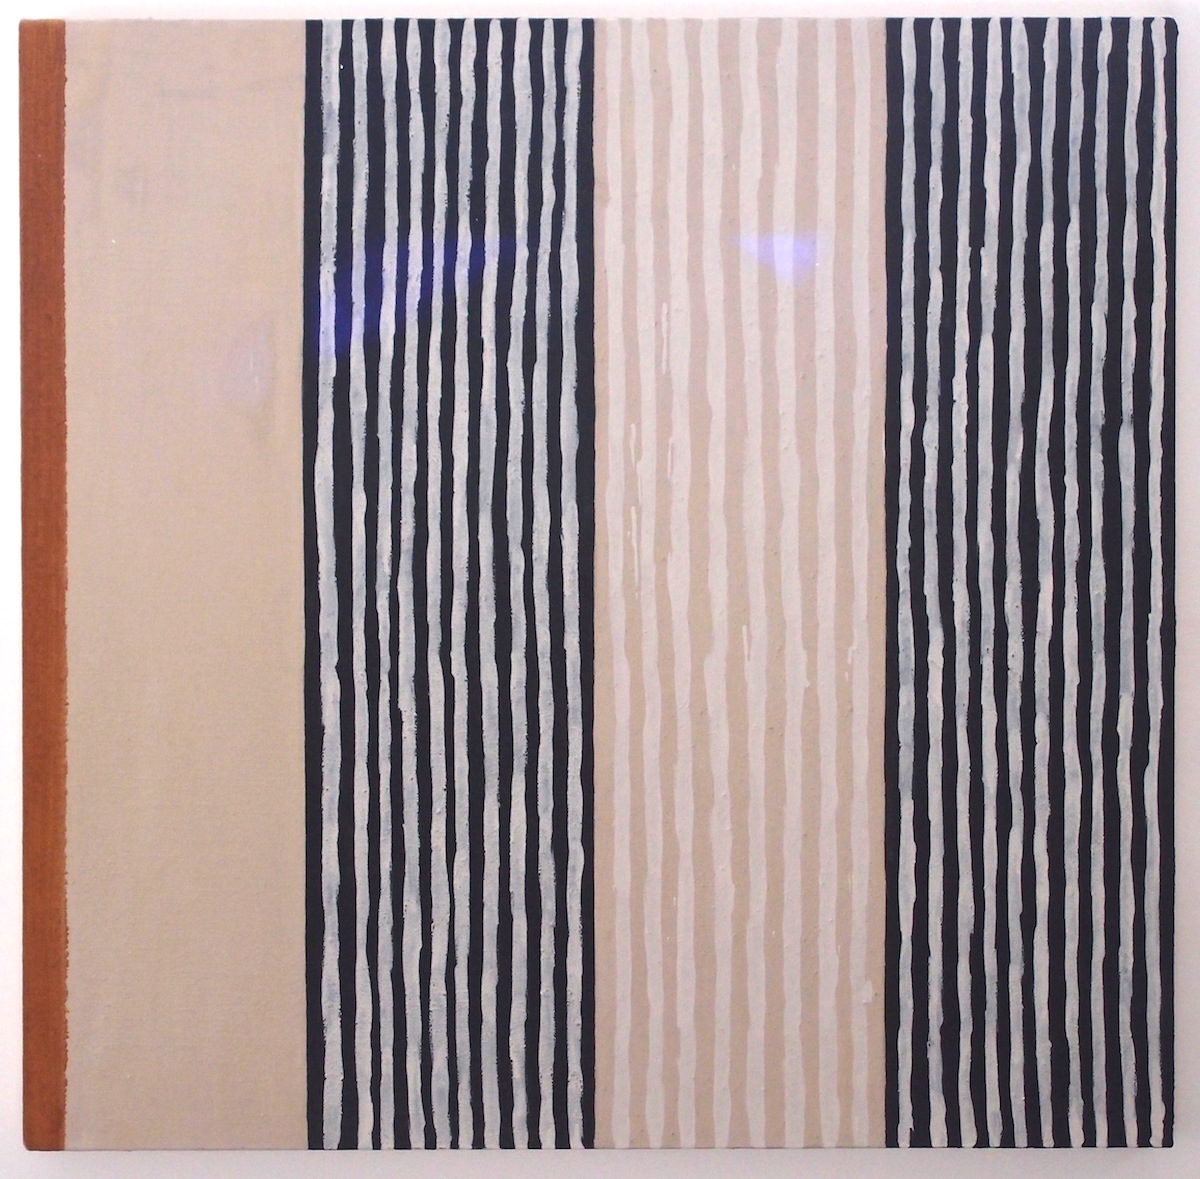 painted verticals (earth pigments on canvas; 90x90cm) © p ward 2014